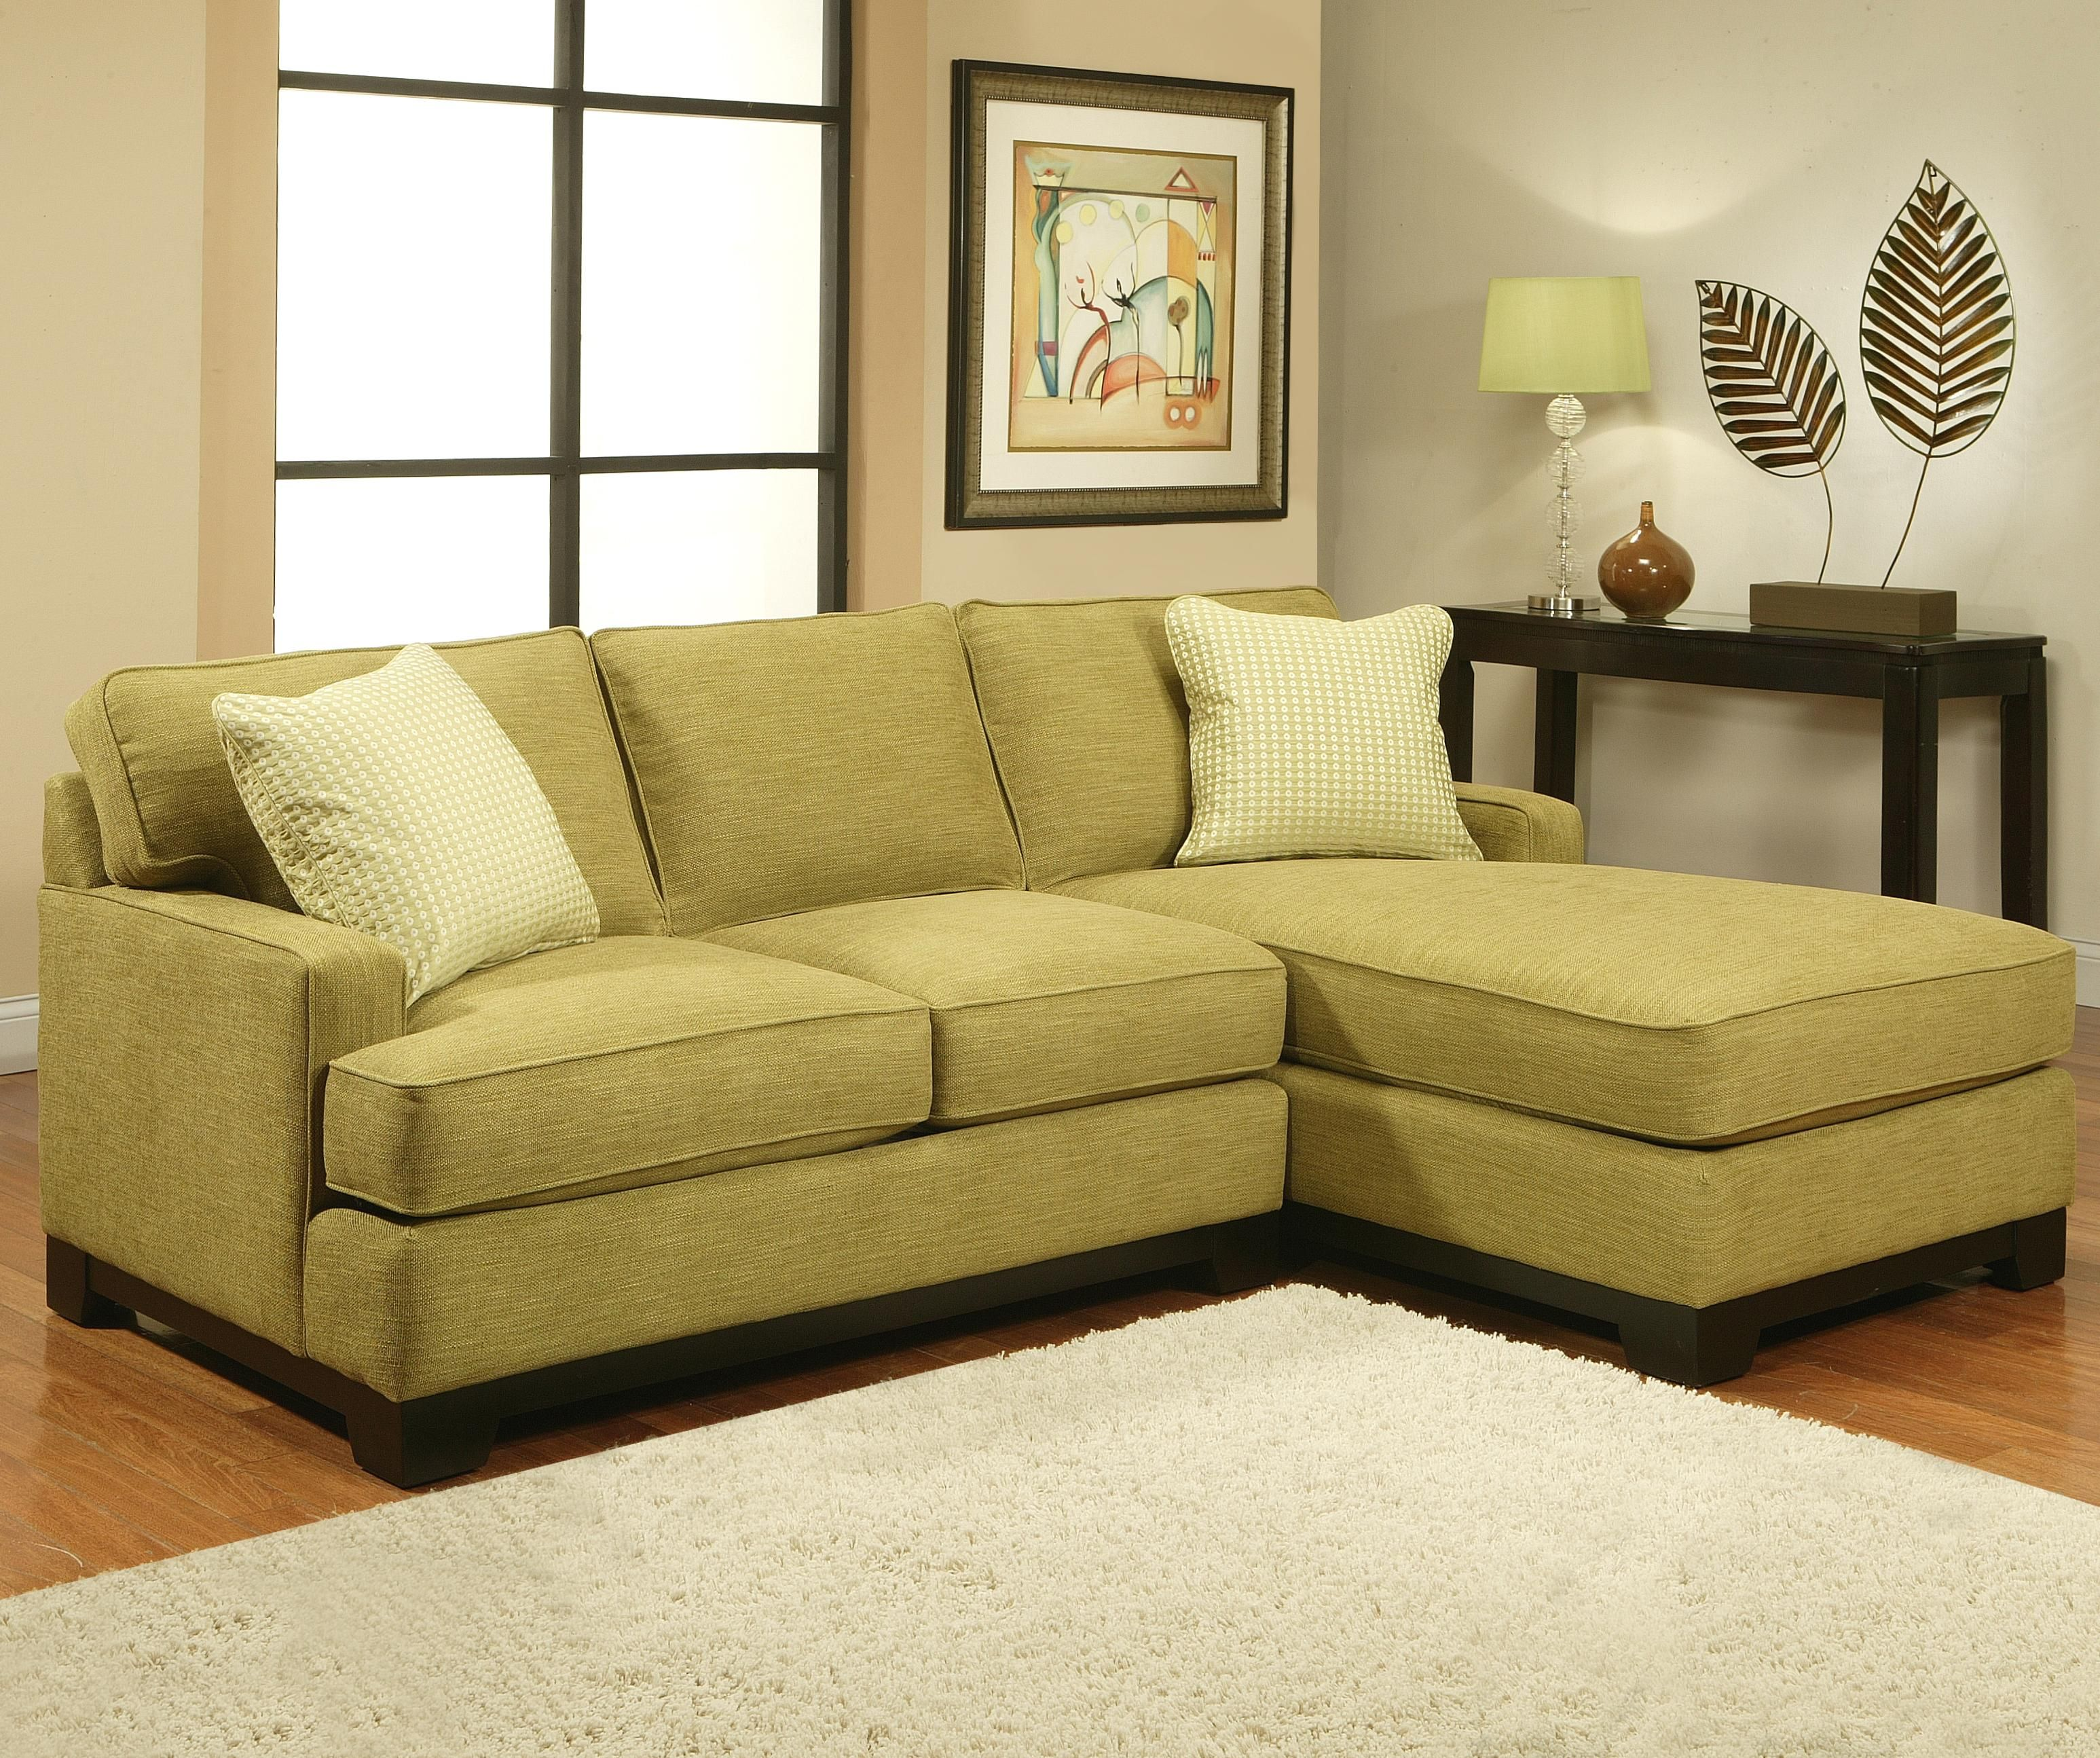 Choices Kronos Contemporary Sectional Sofa with Track Arms by